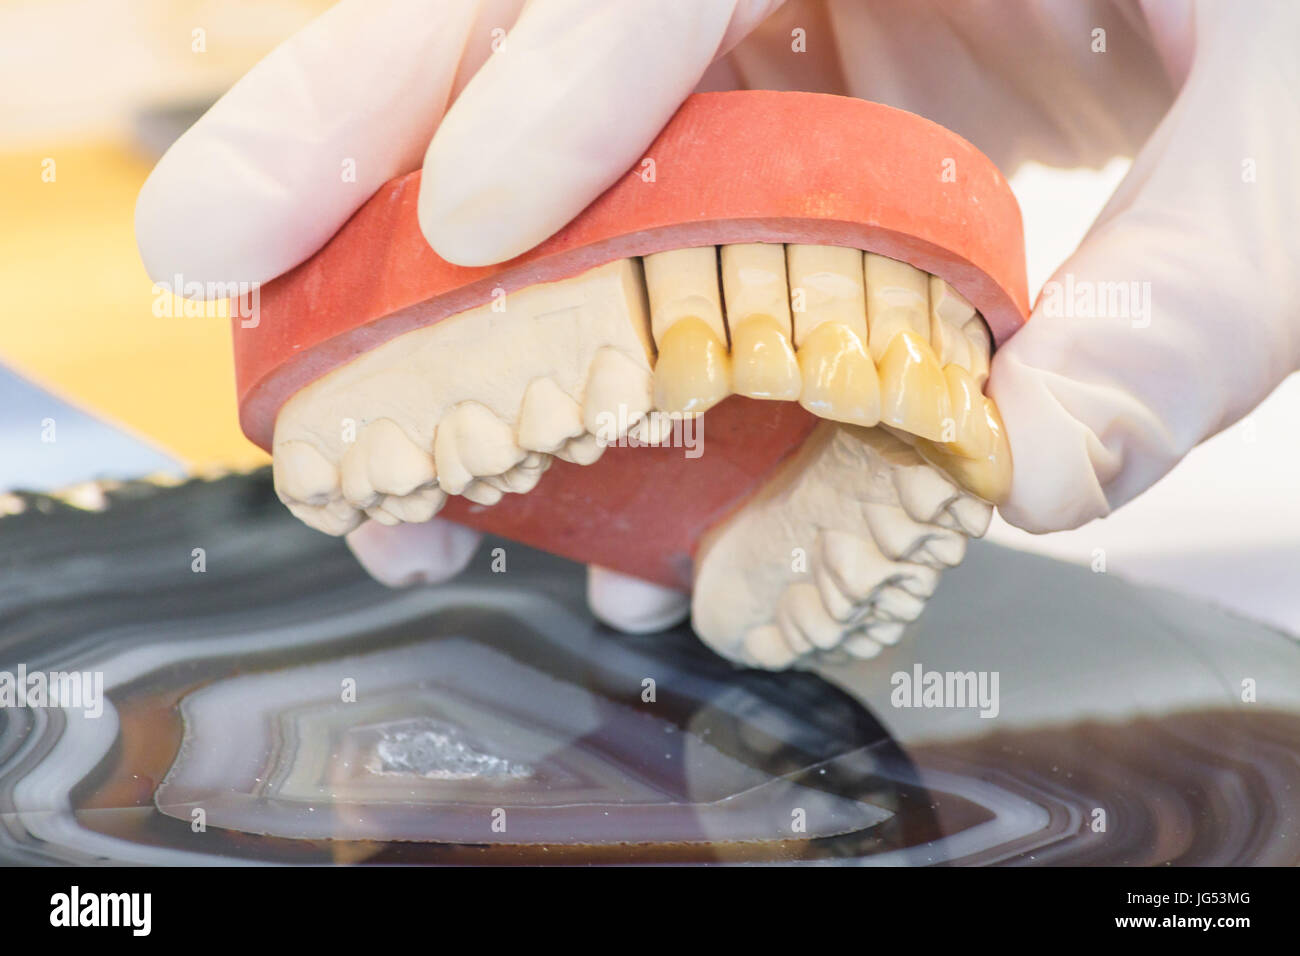 Dentures, prosthesis and oral hygiene. Hands with gloves while working on a dental prosthesis. Stock Photo